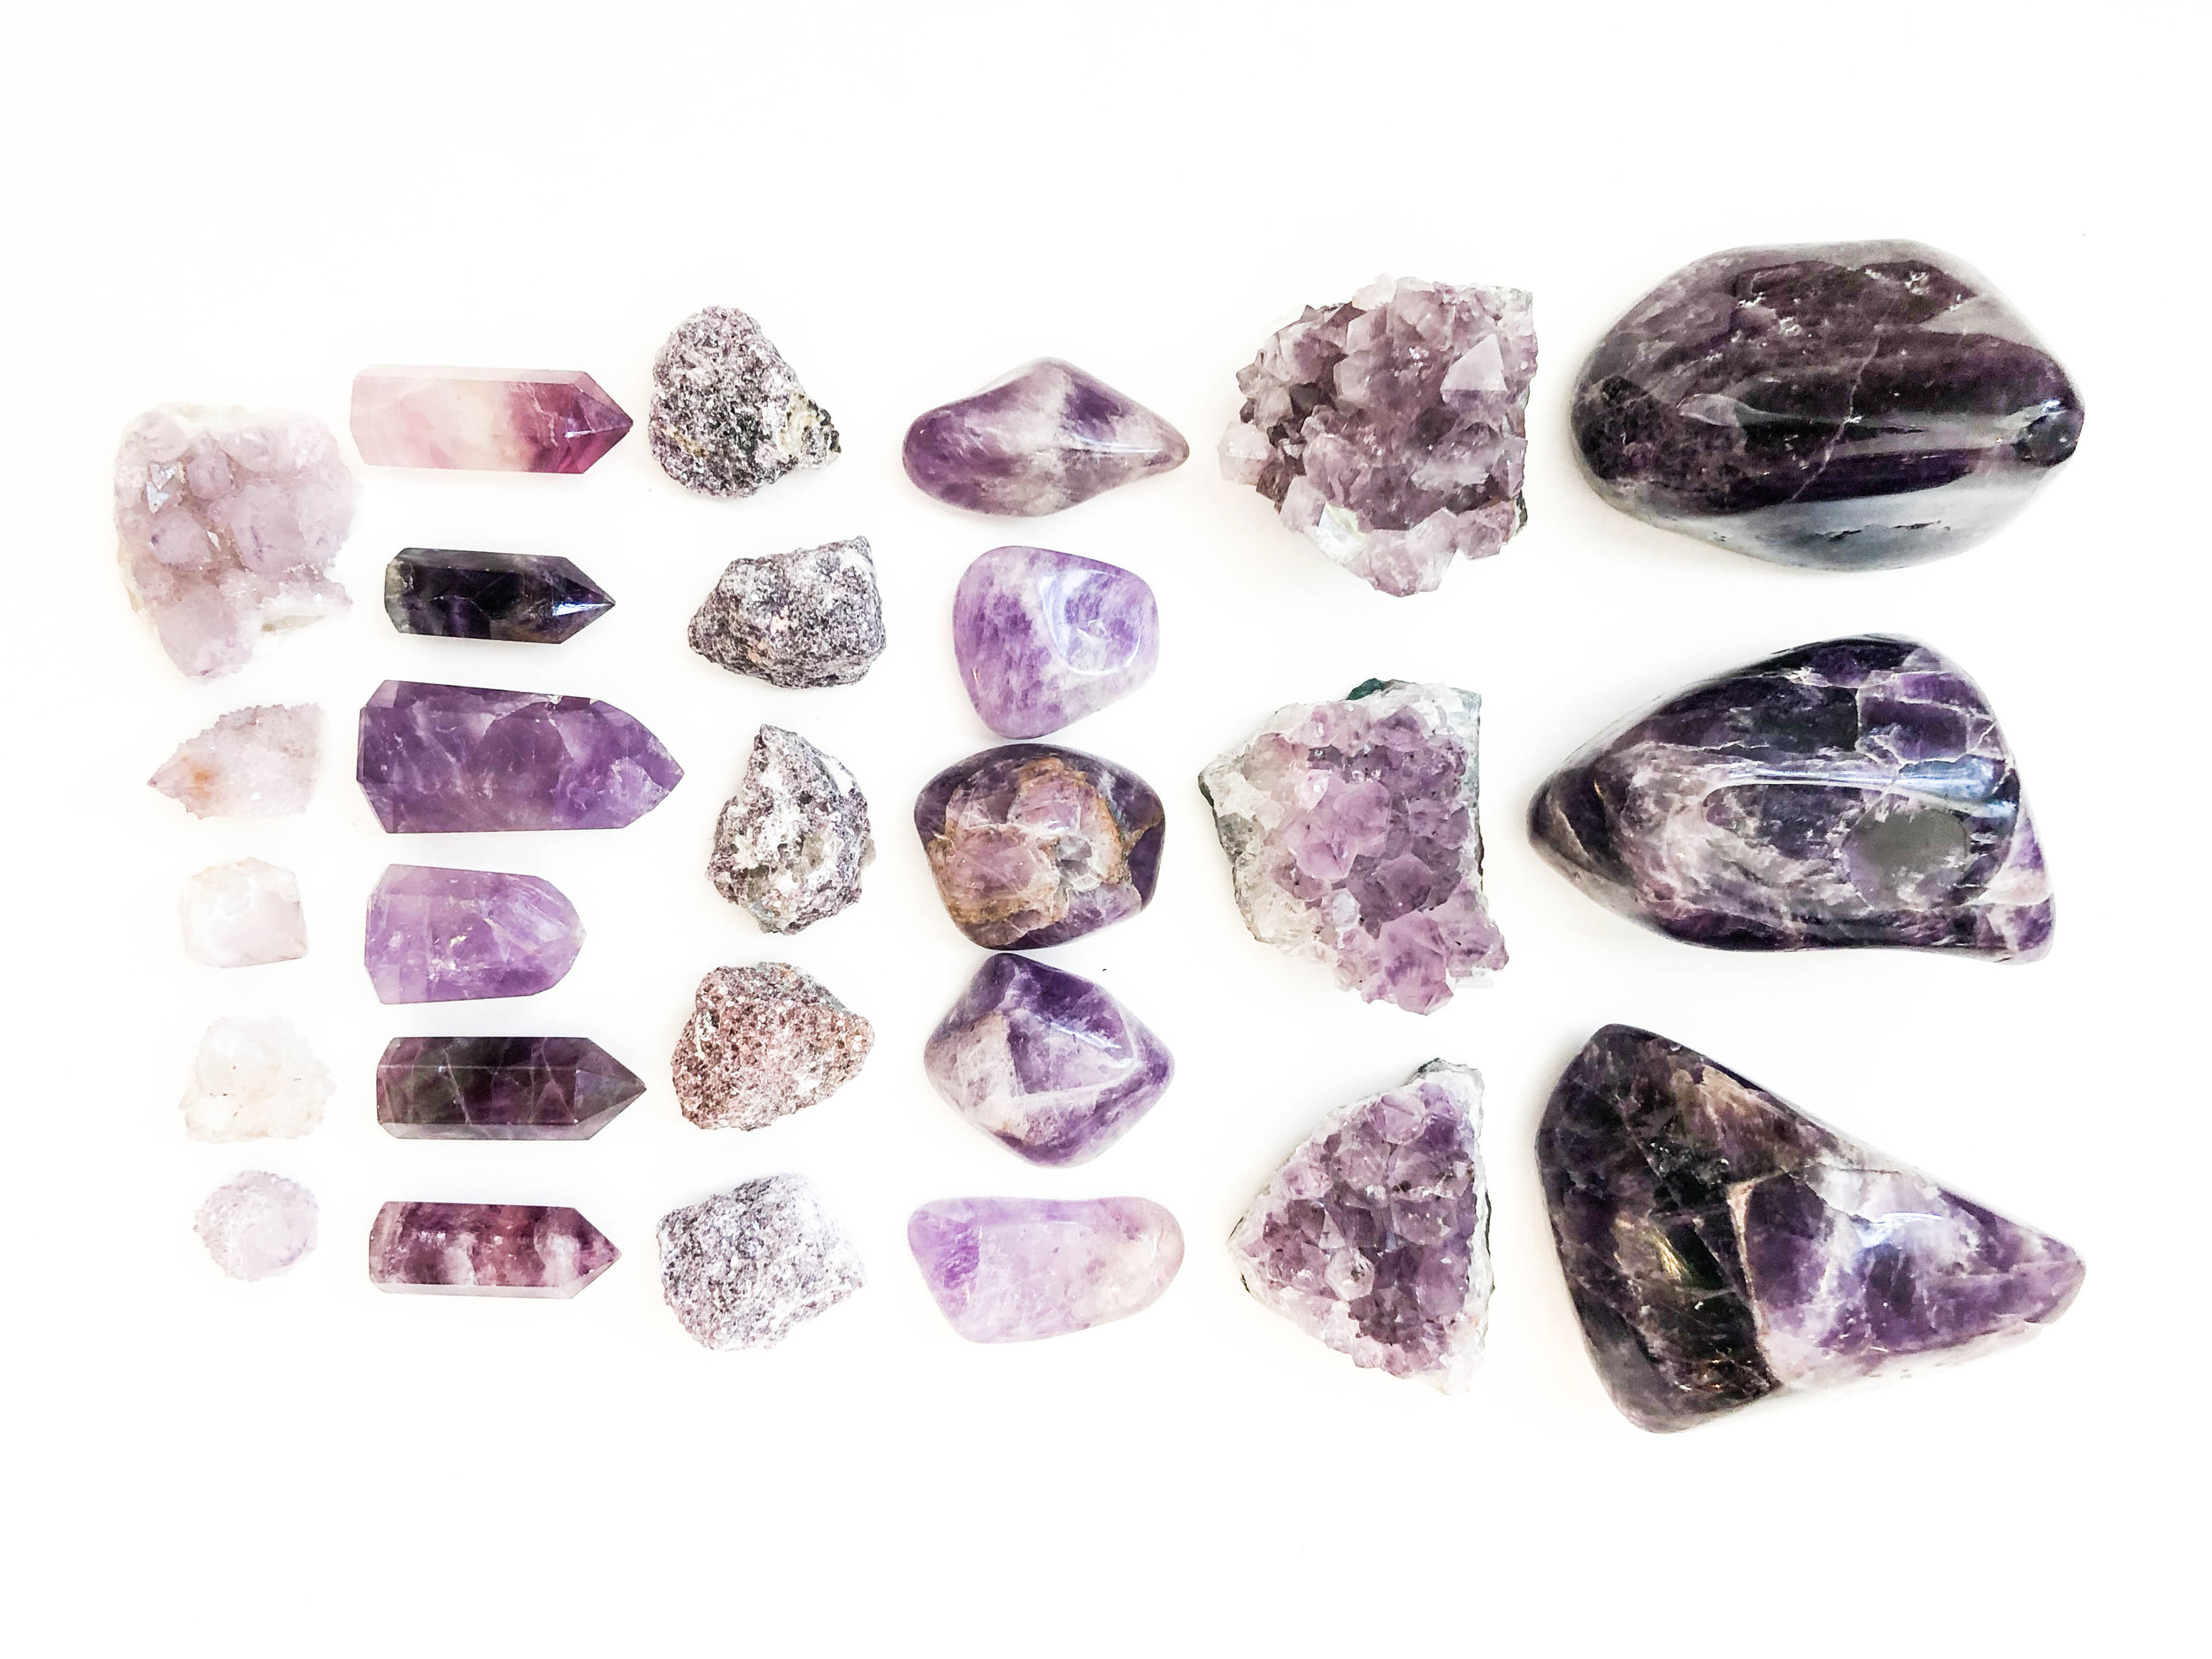 Left to Right: Spirit Quartz Clusters, Fluorite Amethyst Points, Lepidolite, Amethyst Tumbled, Amethyst Cluster, Large Chevron Amethyst Chunks.  Amethyst enhances intuition and dreams. Lepidolite has lithium in it and is good for anxiety. Spirit quartz is for divine spirituality.